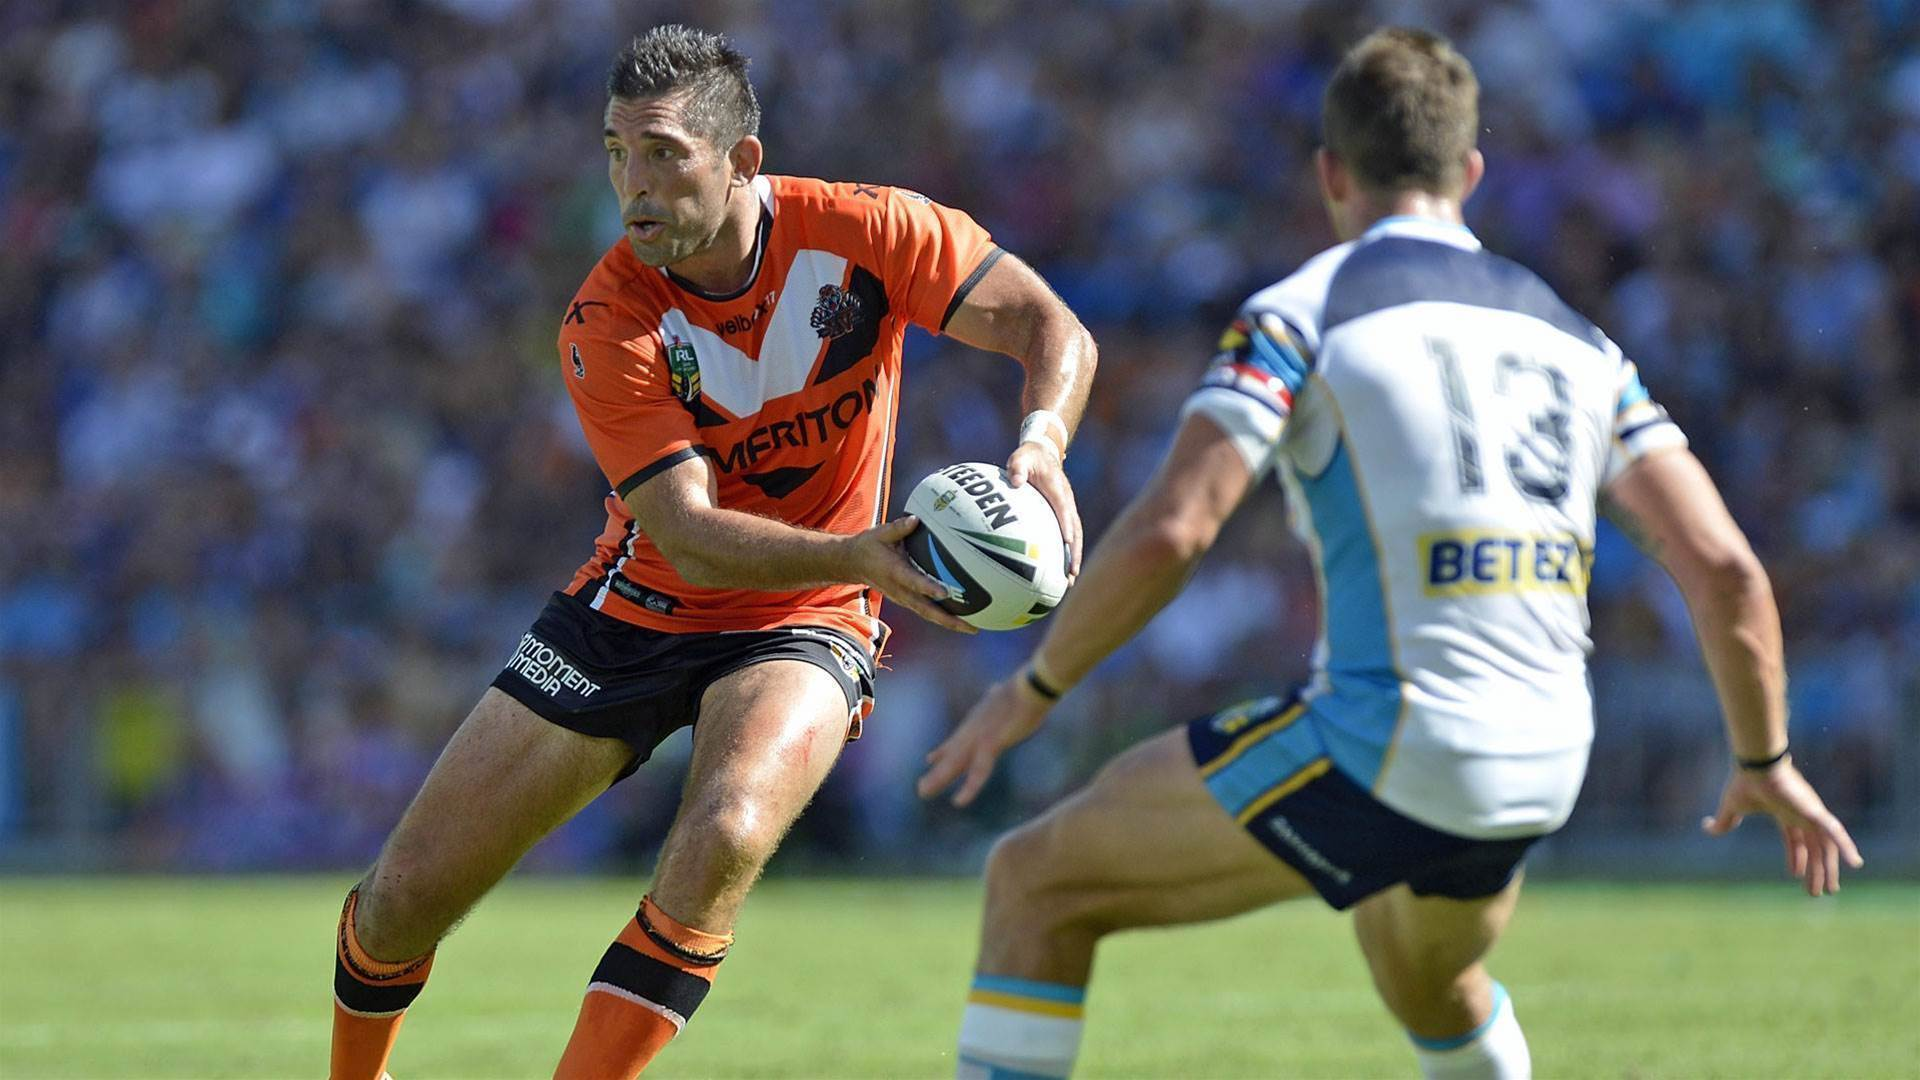 Braith Anasta: What it means to be called overrated